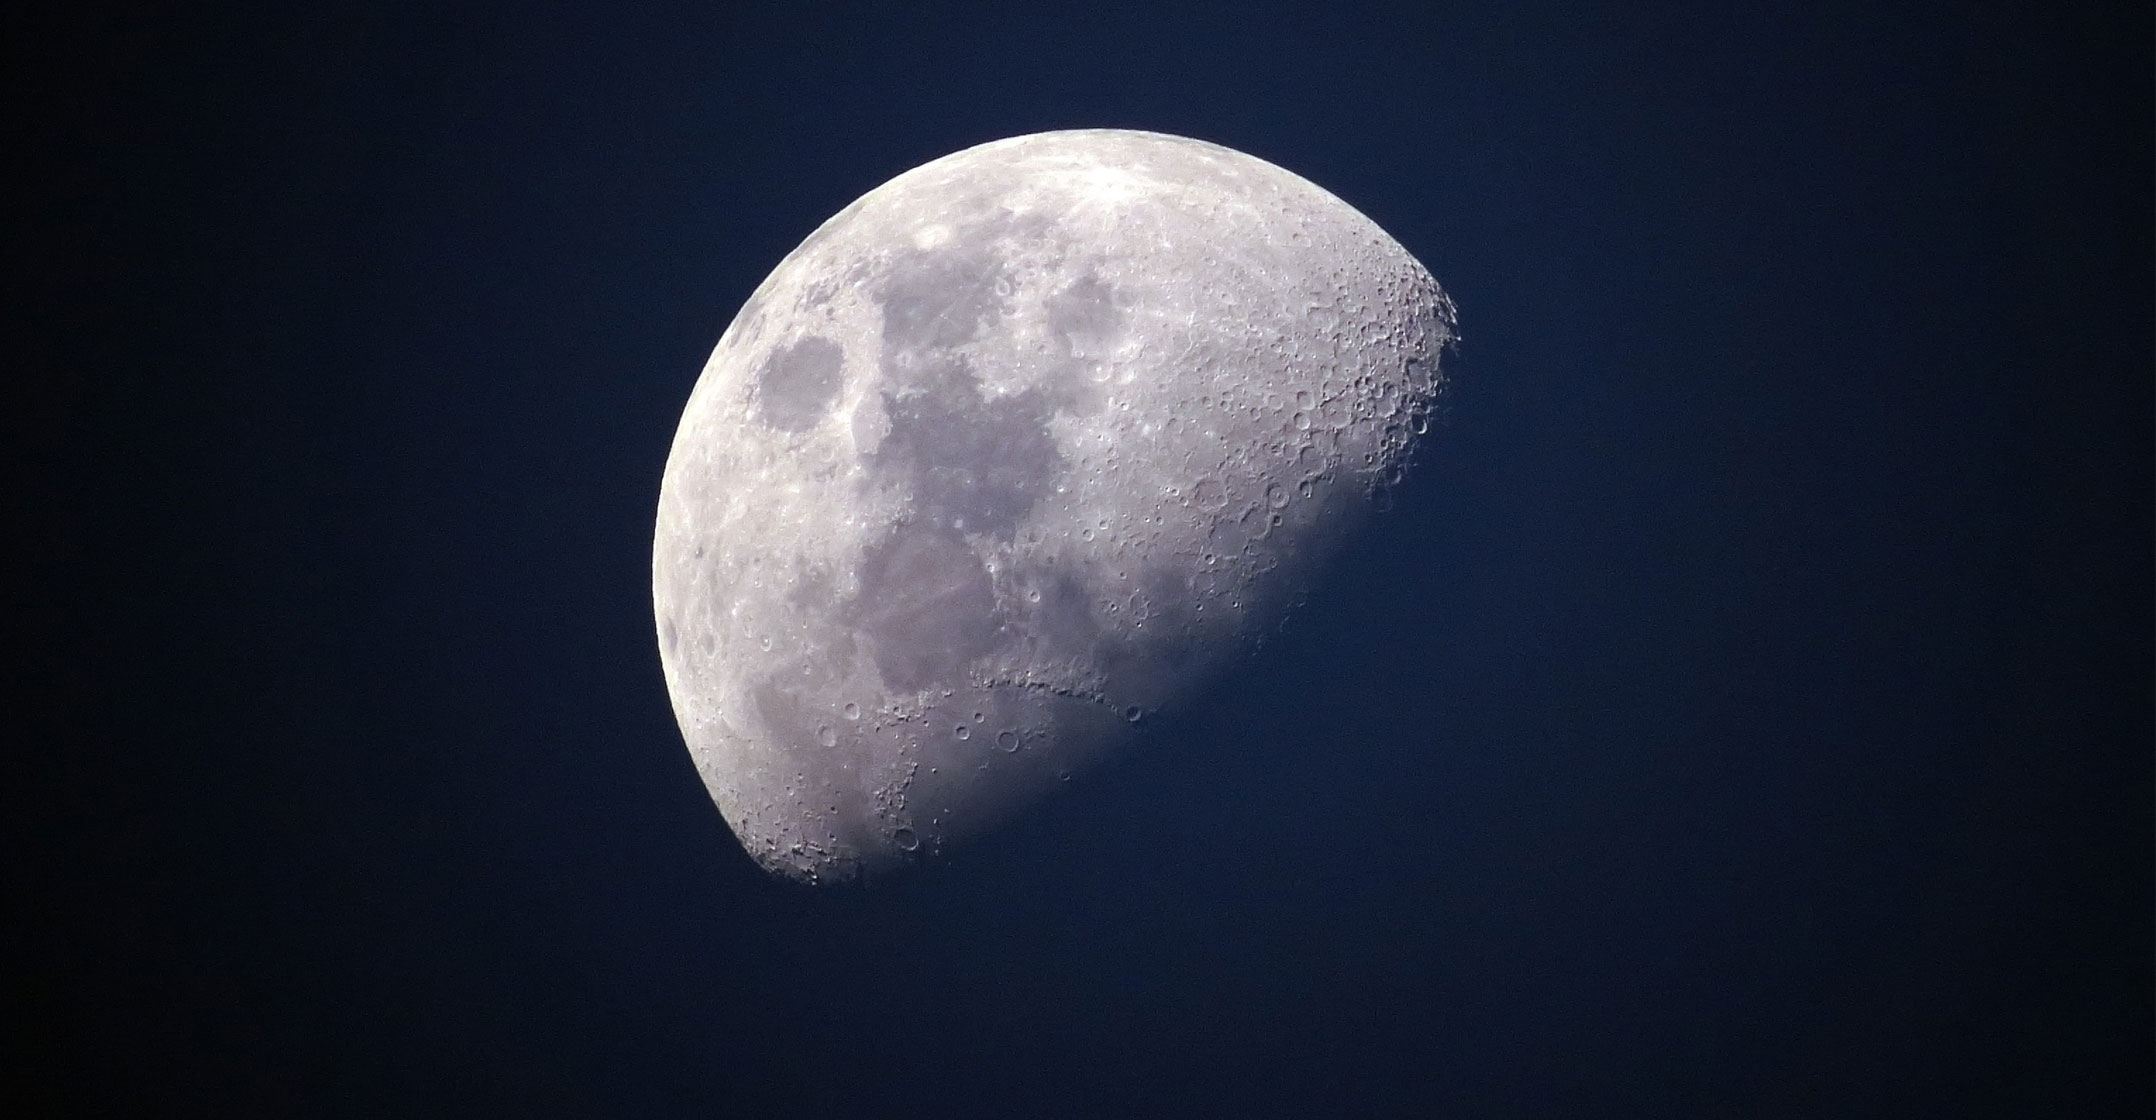 4G network to be deployed on the moon - TechCentral